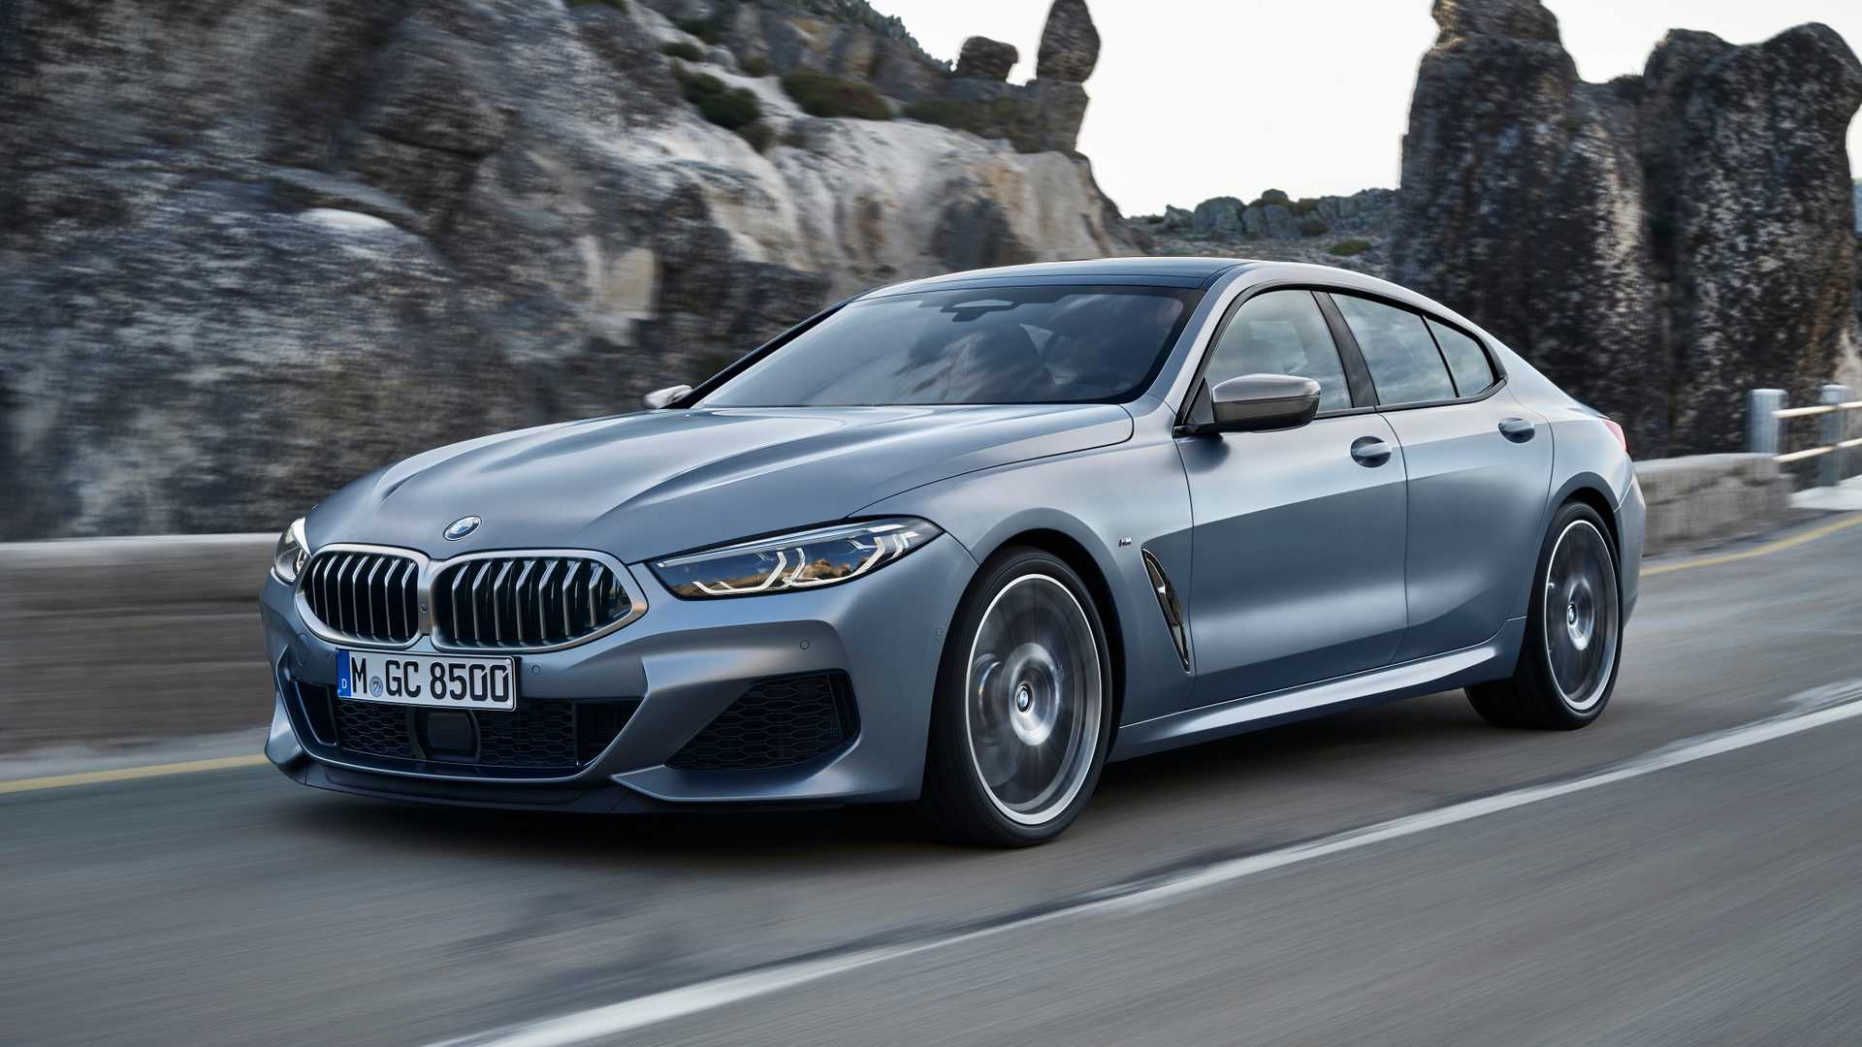 8 BMW 8 Series Gran Coupe Is Luxury Fun With Two More Doors